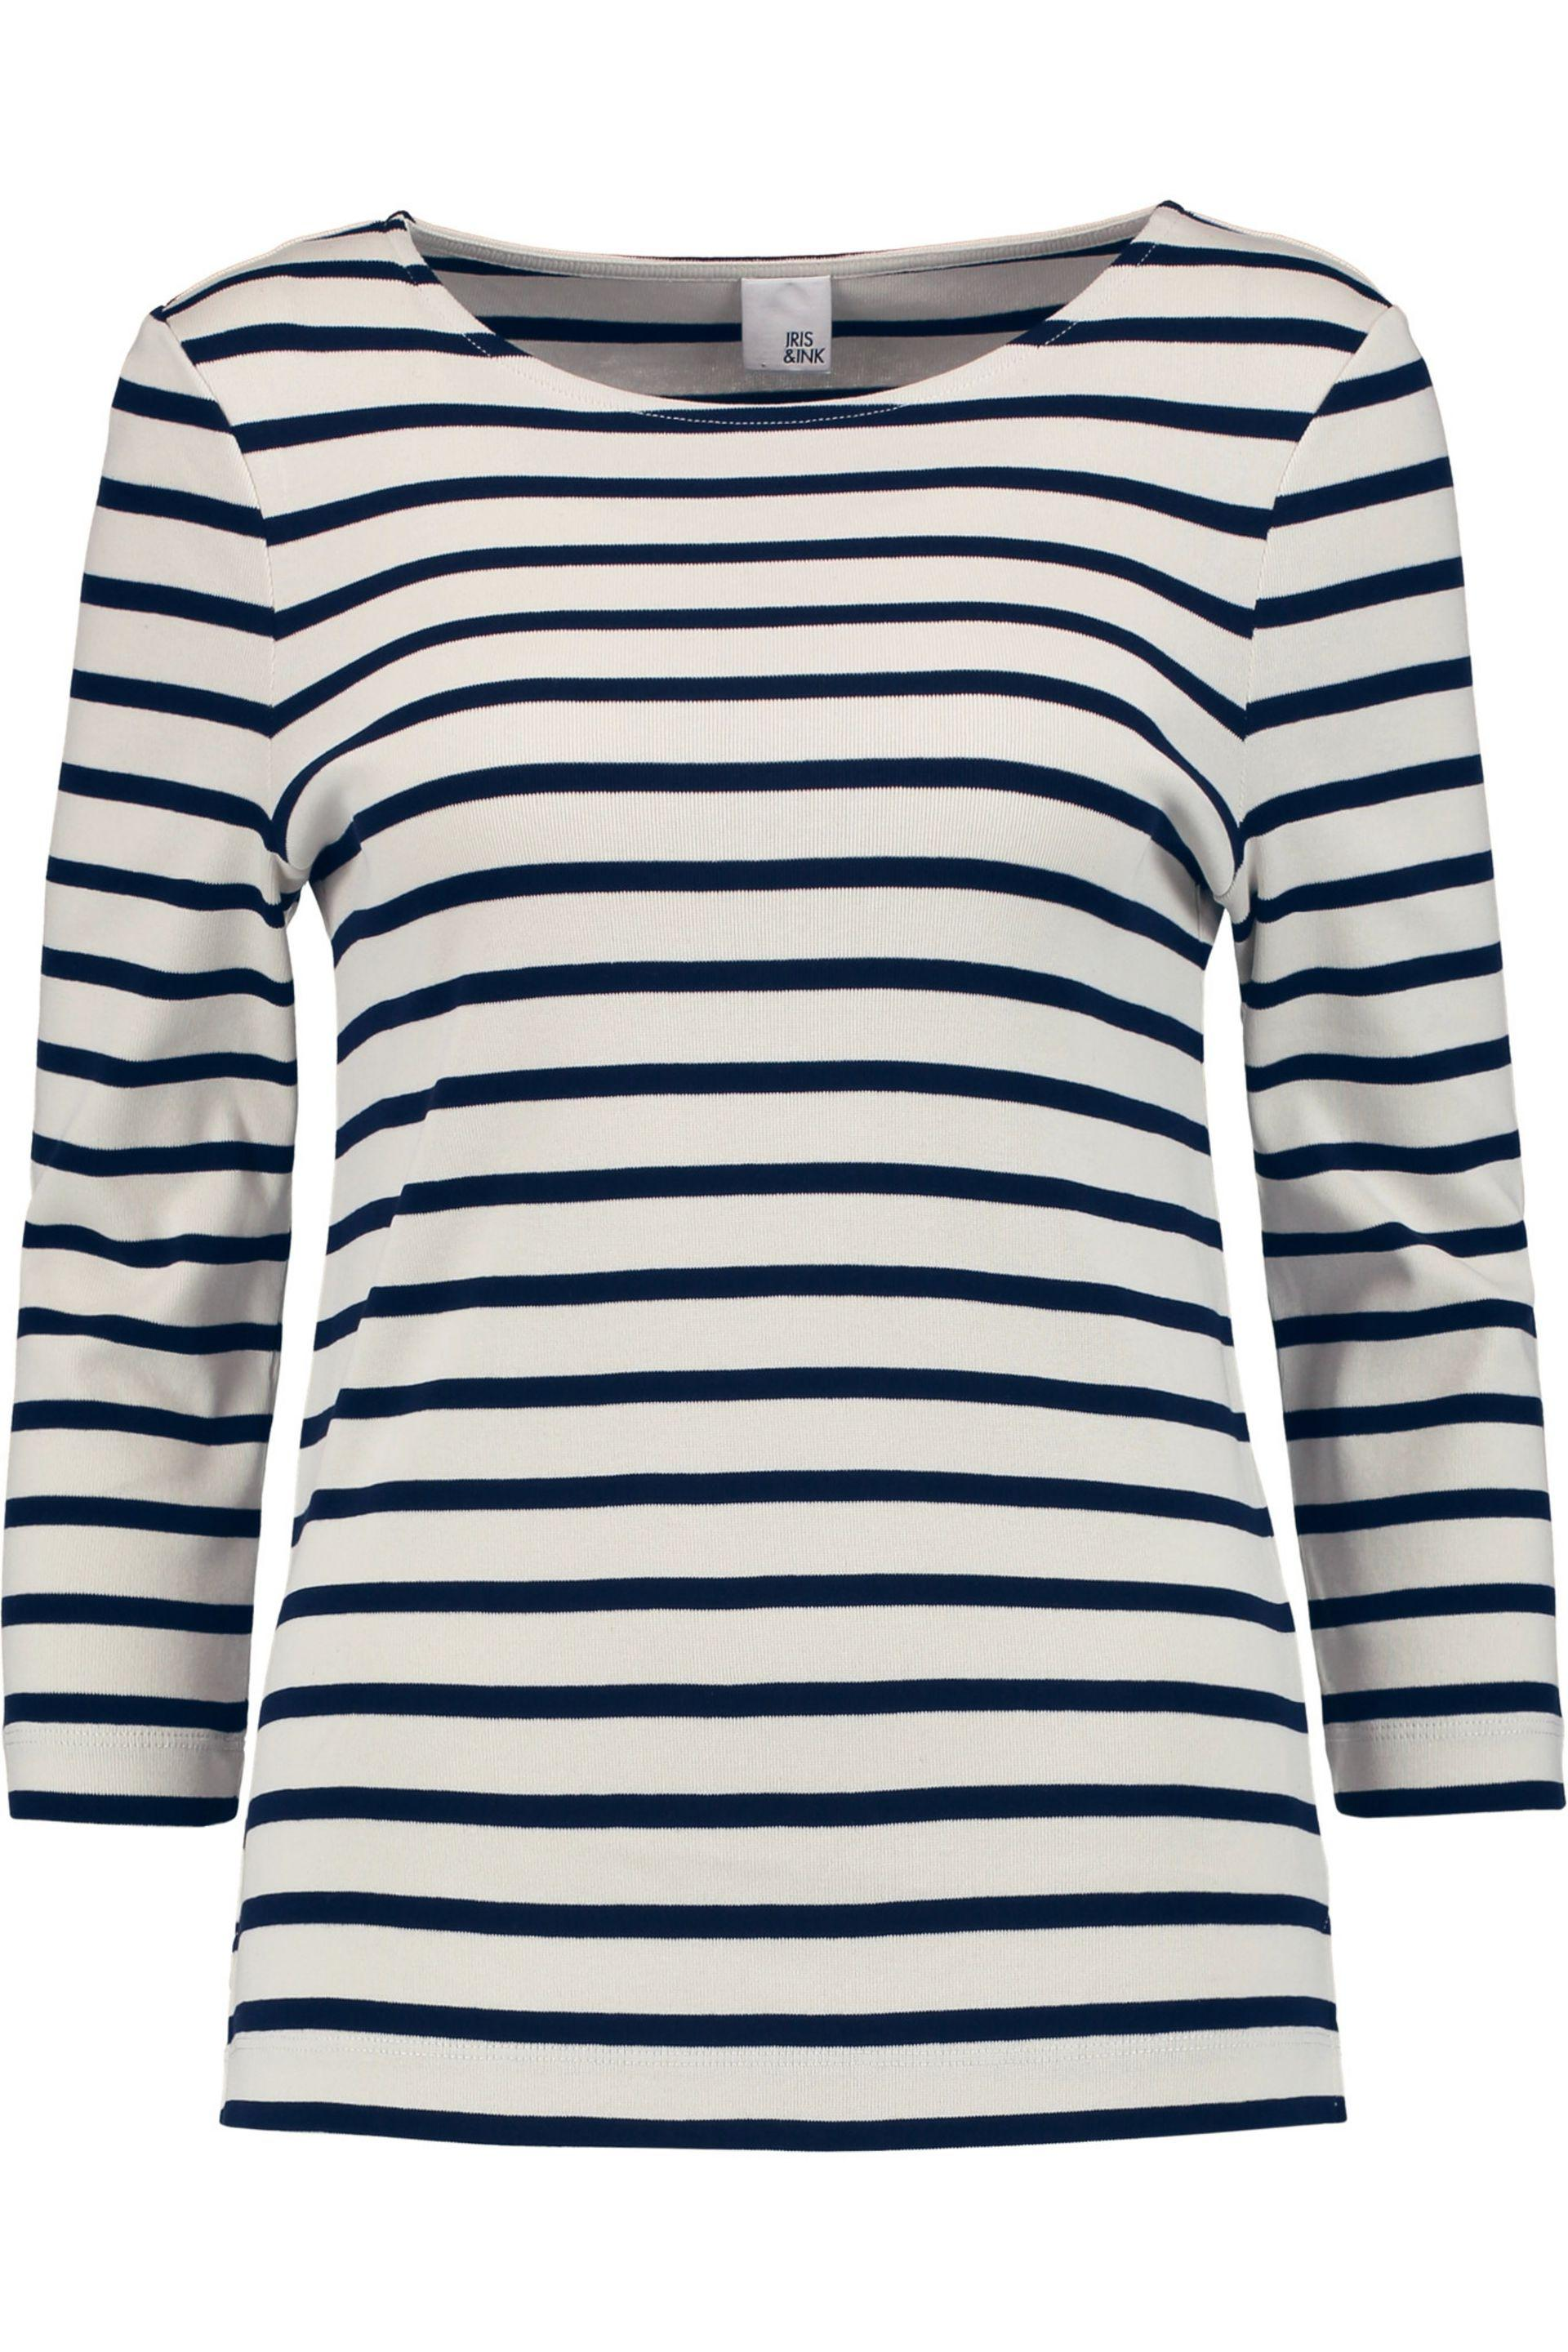 Iris & Ink Woman Madeline Striped Cotton-jersey Top Blue Size S IRIS & INK Brand New Unisex Online Sale Popular Footaction H0UfXe8